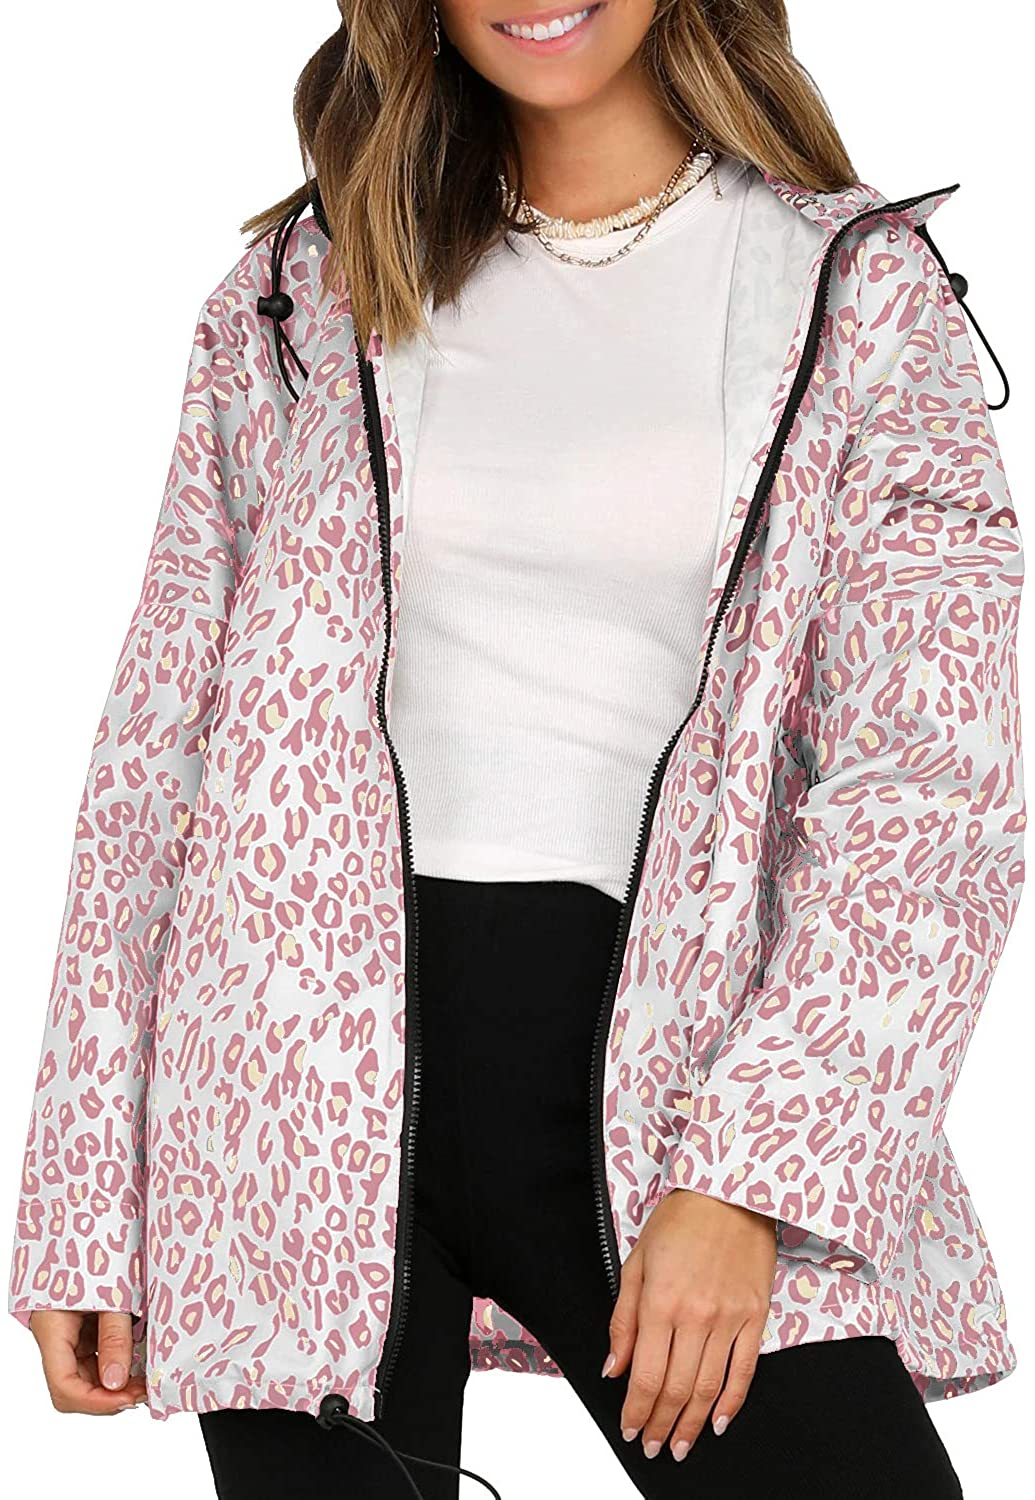 Leopard Print Windbreaker Women Sports Windproof Jacket Casual Trench Coat with Pockets Hood Zip